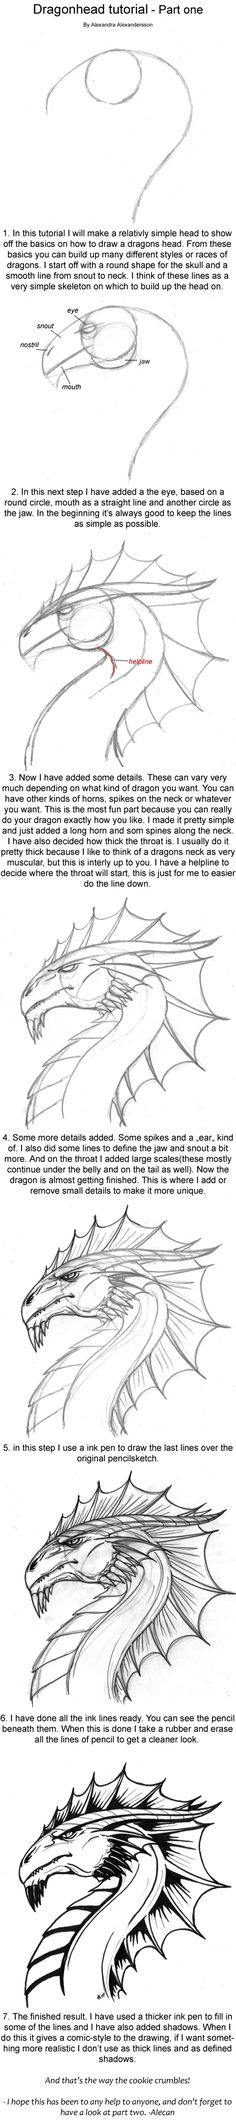 How to draw a dragon's head.